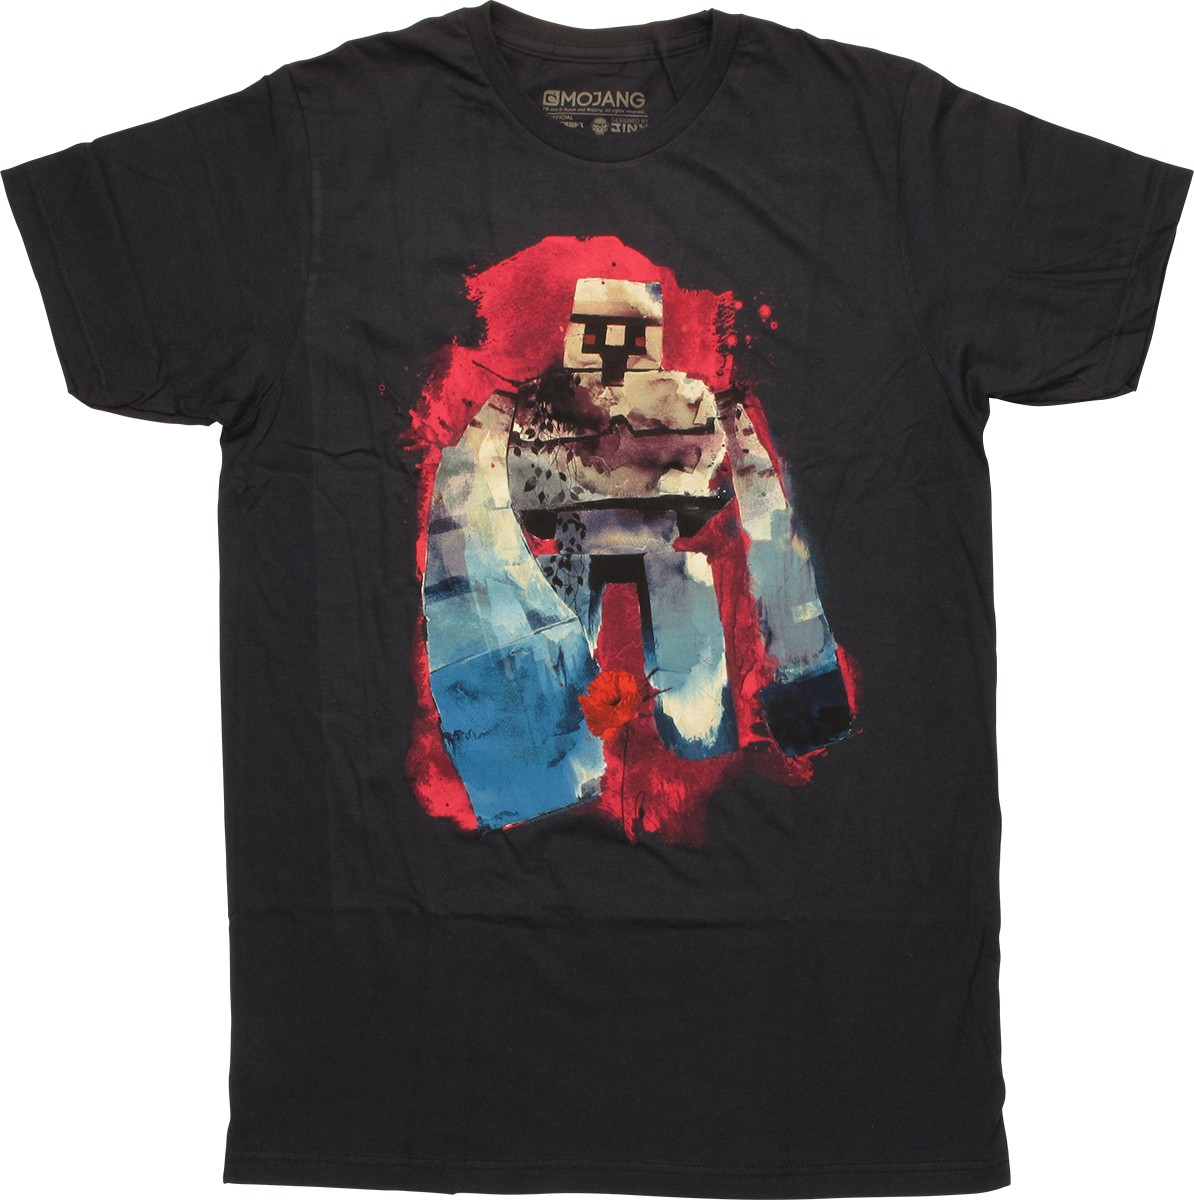 Iron Maiden T-Shirts and Merchandise Don't waste your years searching for Iron Maiden merchandise when you can simply head on over to Hot Topic and fulfil your burning ambition of becoming the ultimate Iron Maiden memorabilia collector.